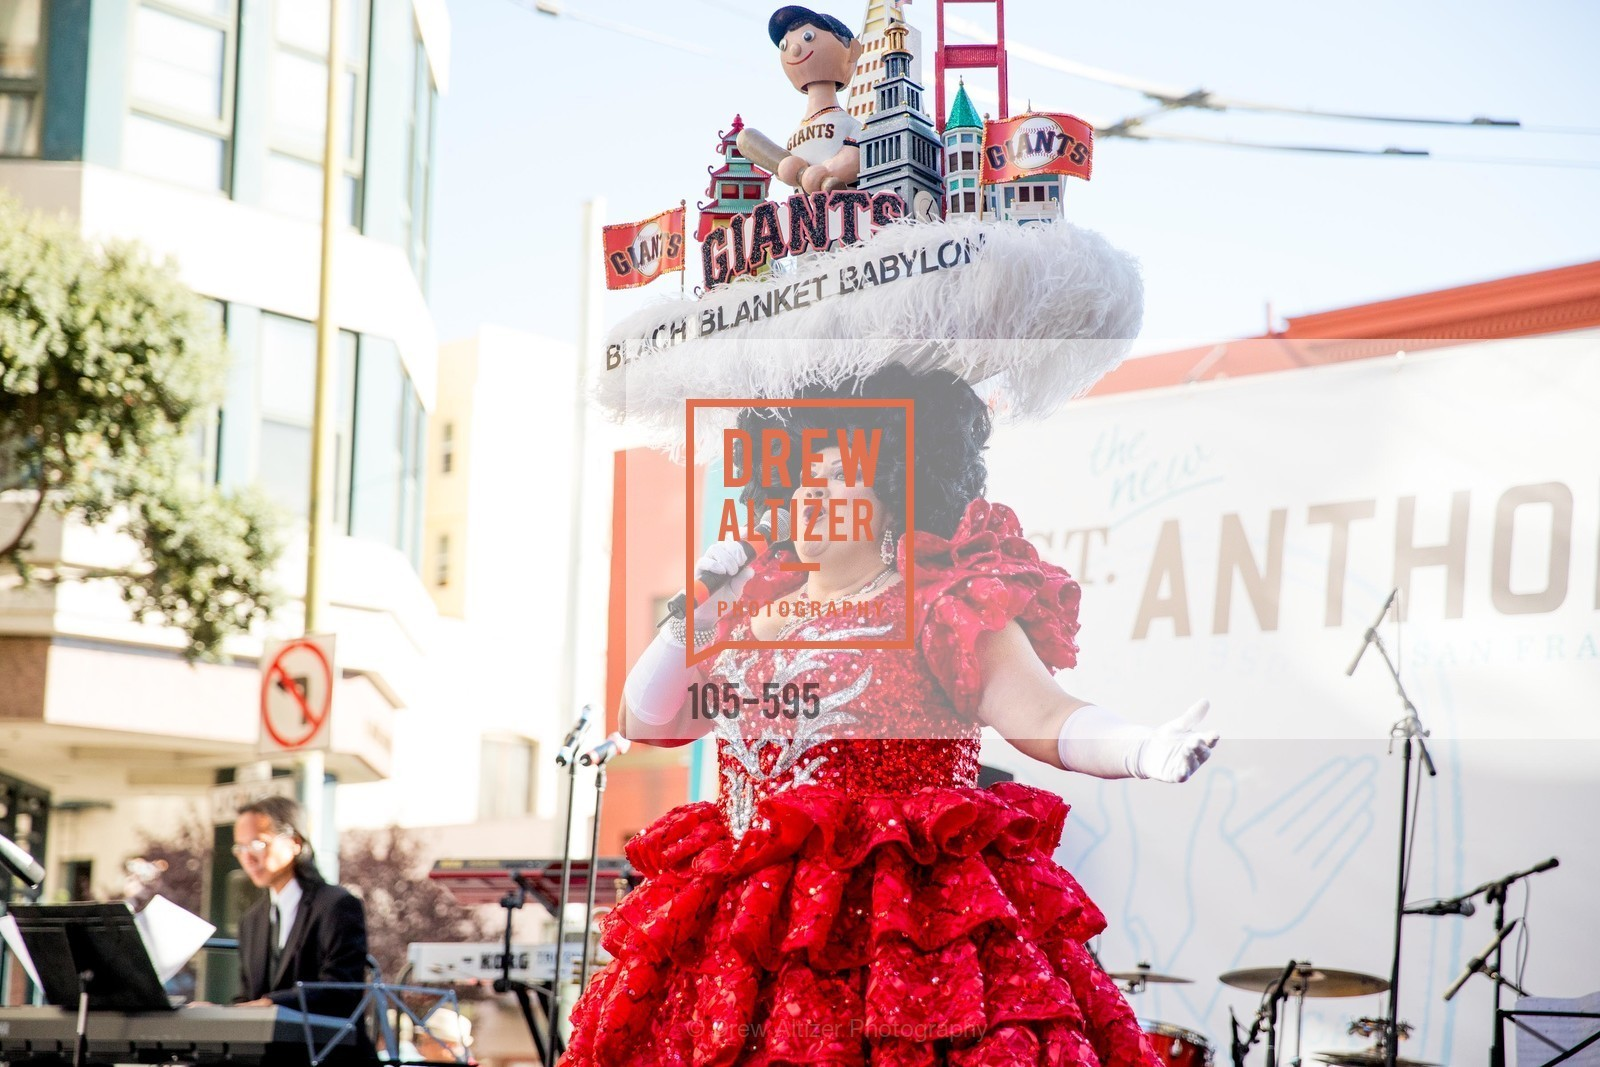 Beach Blanket Babylon, ST. ANTHONY'S Dining Room Ribbon Cutting Ceremony, US, October 4th, 2014,Drew Altizer, Drew Altizer Photography, full-service agency, private events, San Francisco photographer, photographer california